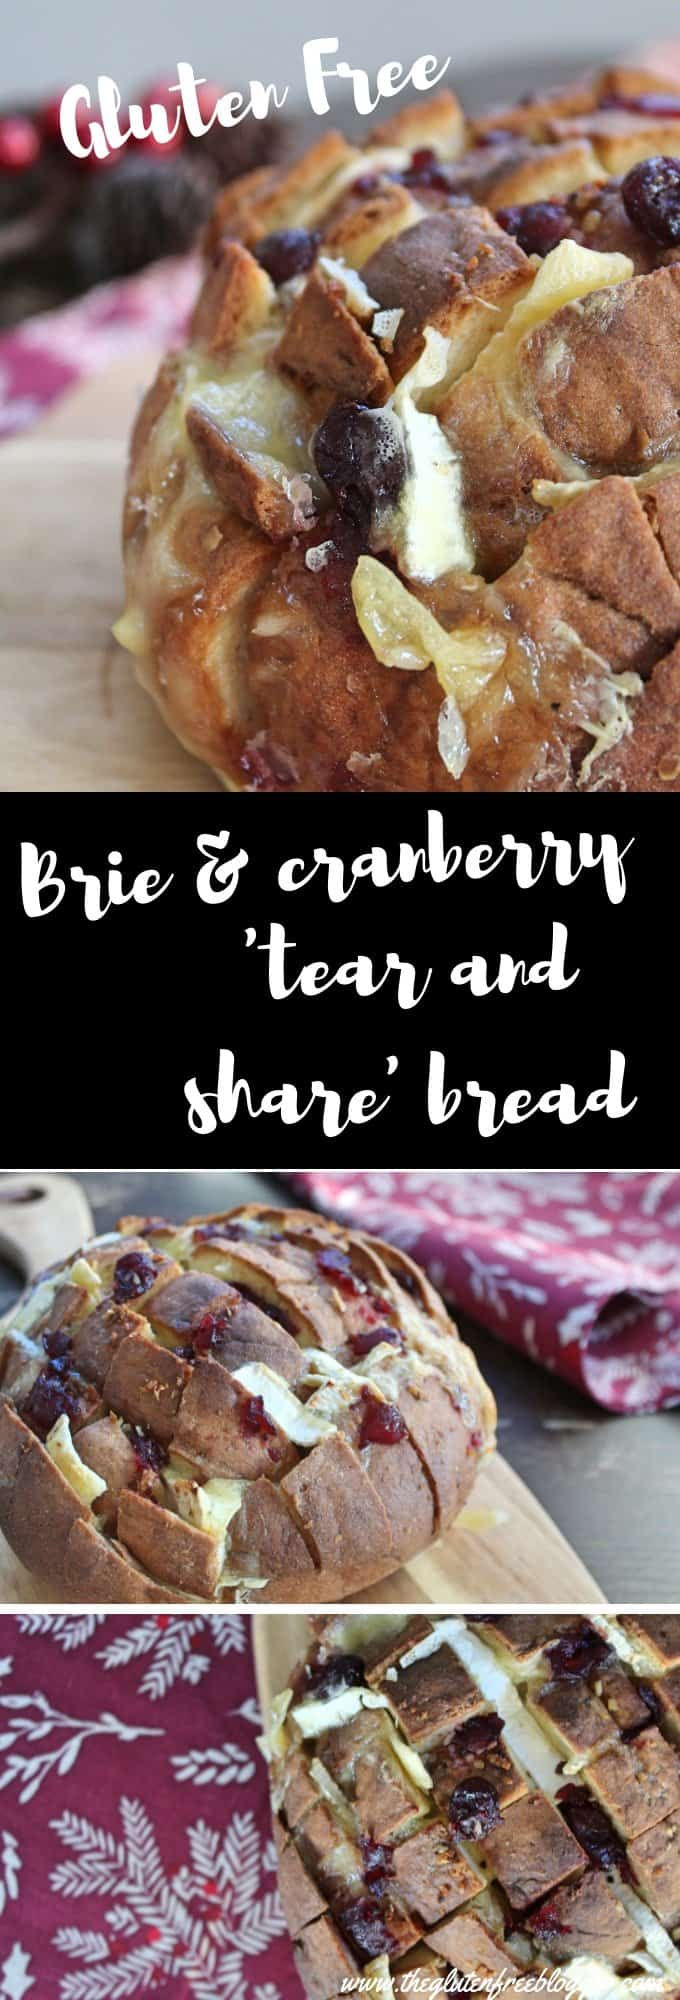 gluten free bread - tear and share bread - gluten free party food - christmas food